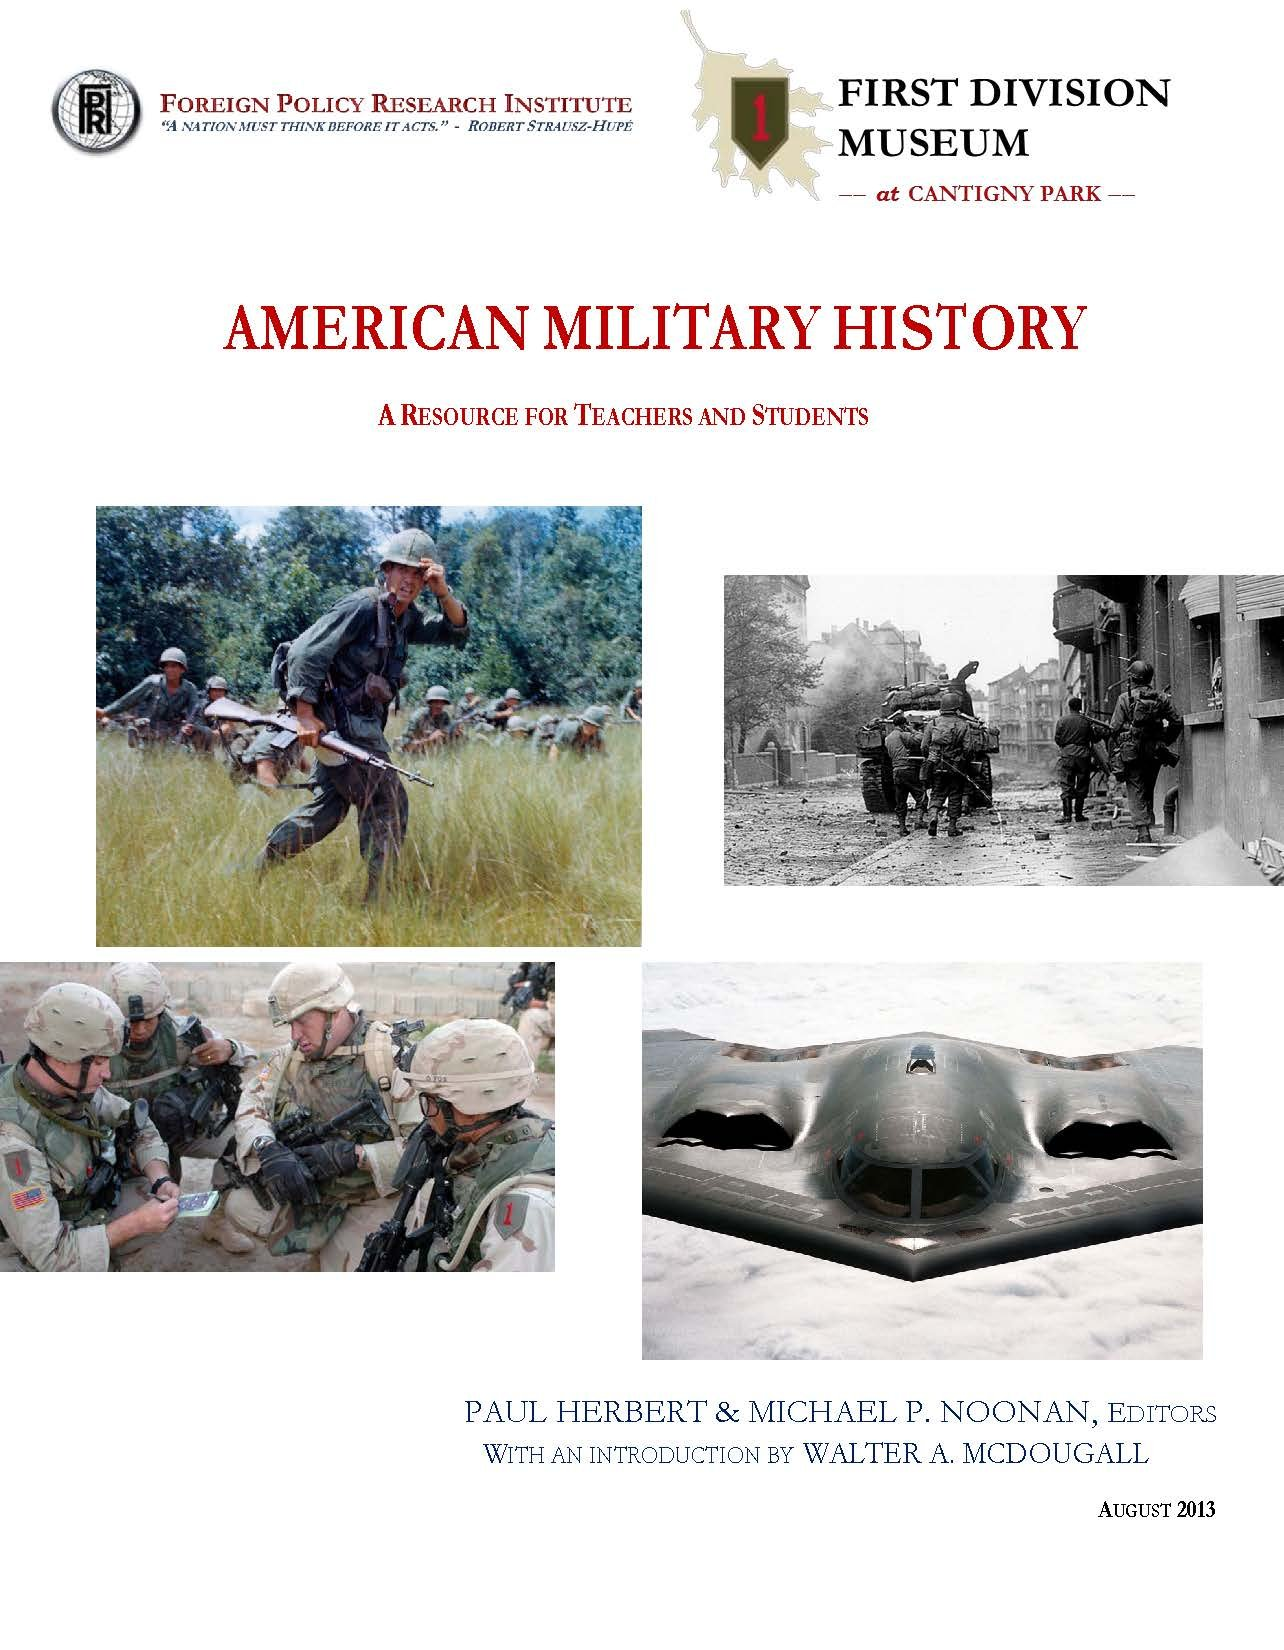 Download American Military History A Resource for Teachers and Students, Foreign Policy Research Institute 2013 [Loose Leaf Edition] pdf